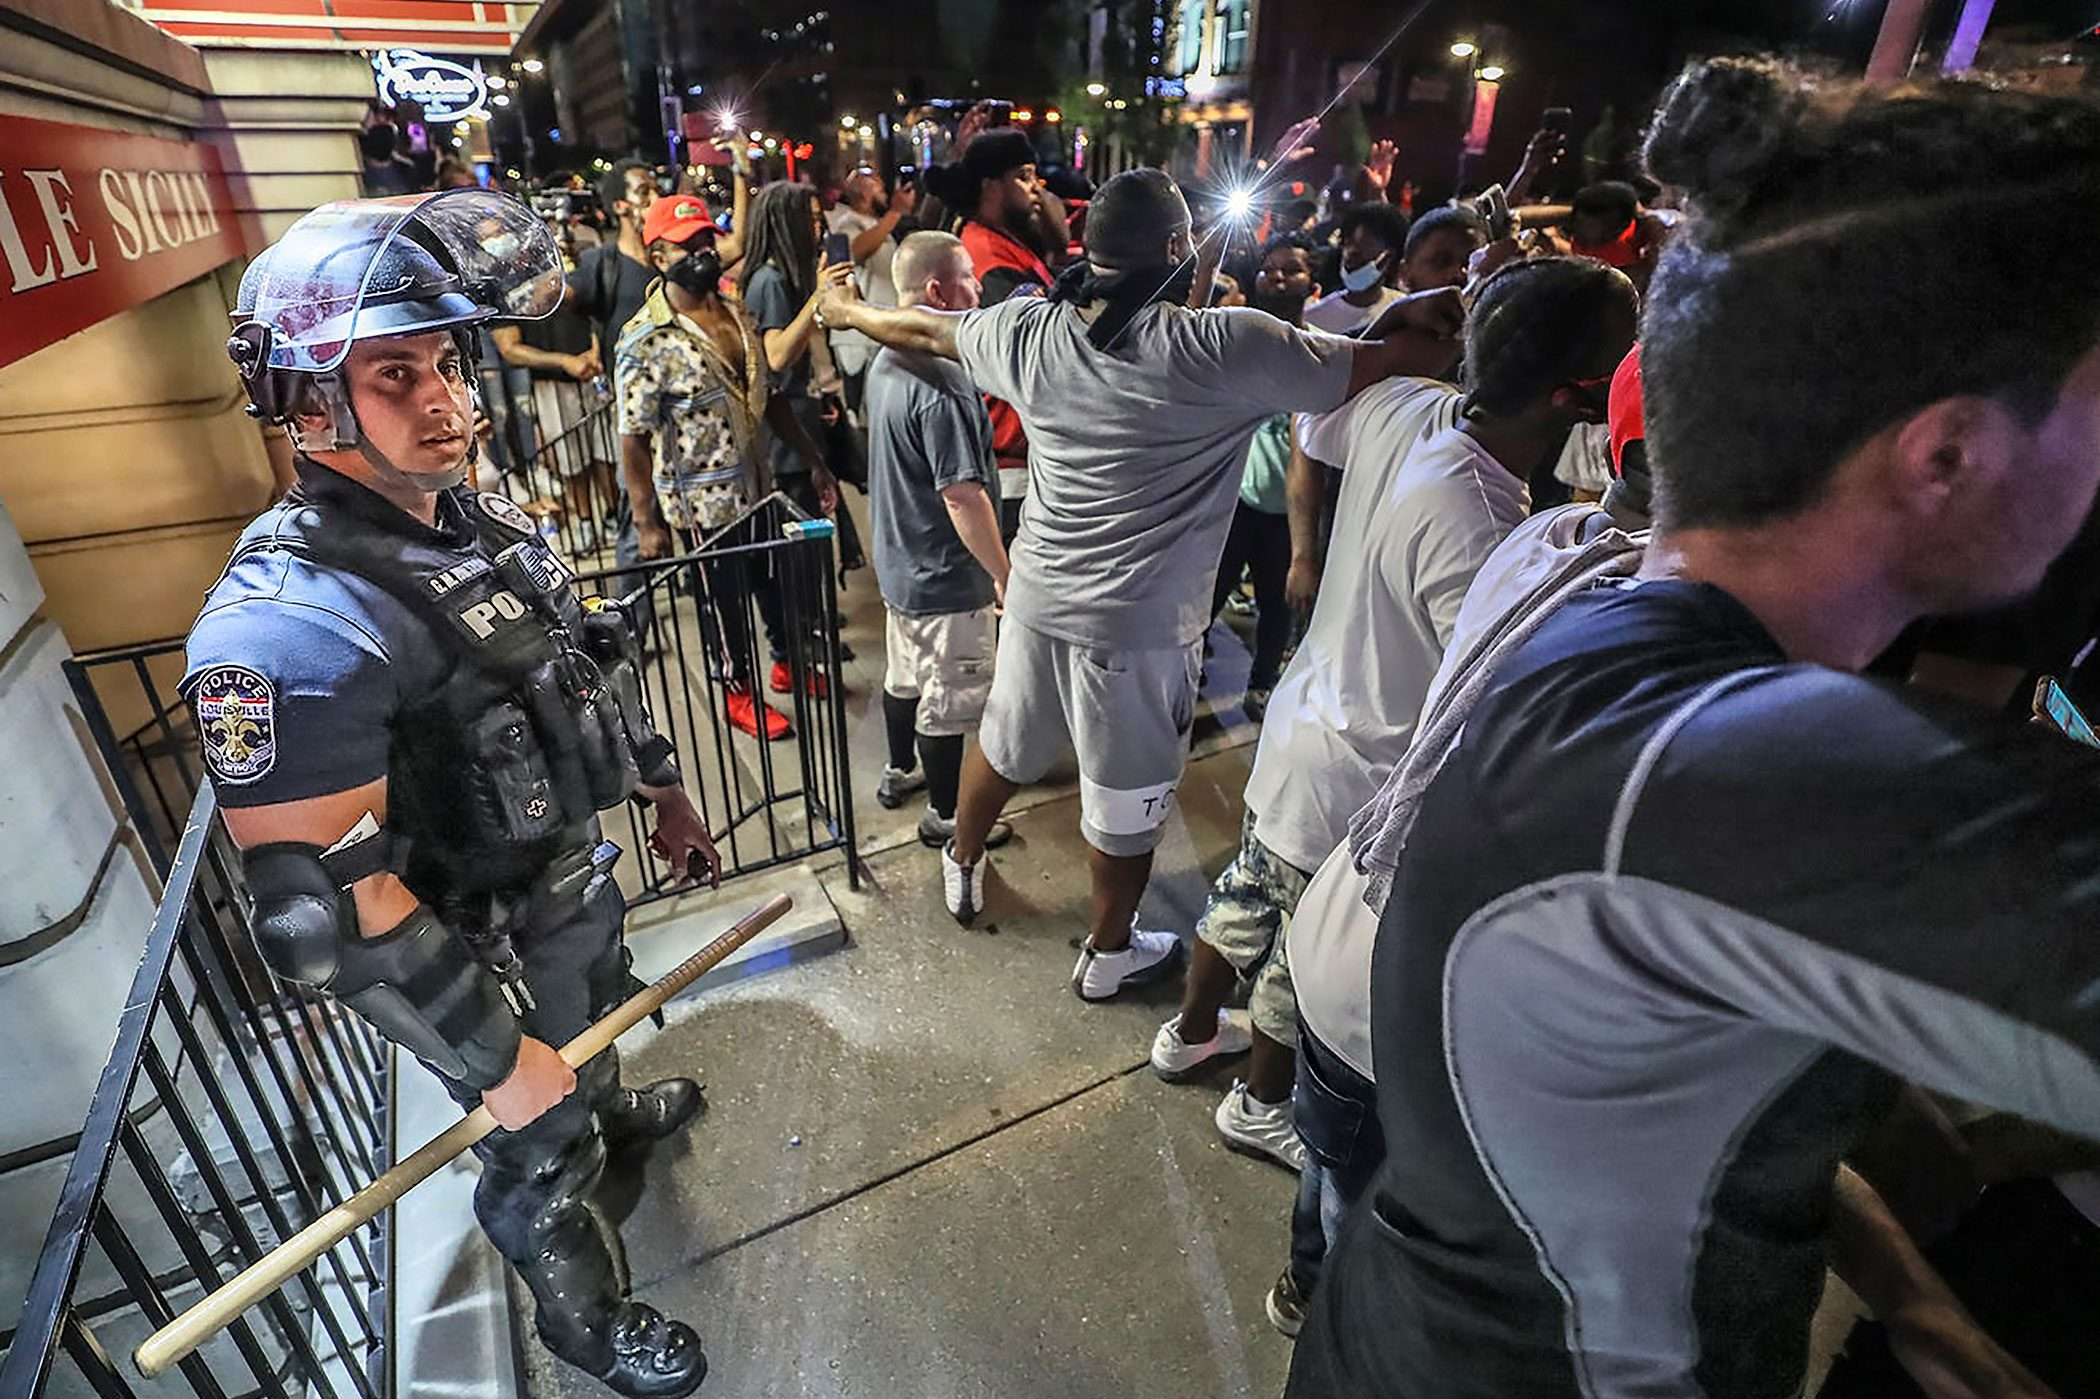 protestors link arms to protect police officer Galen Hinshaw